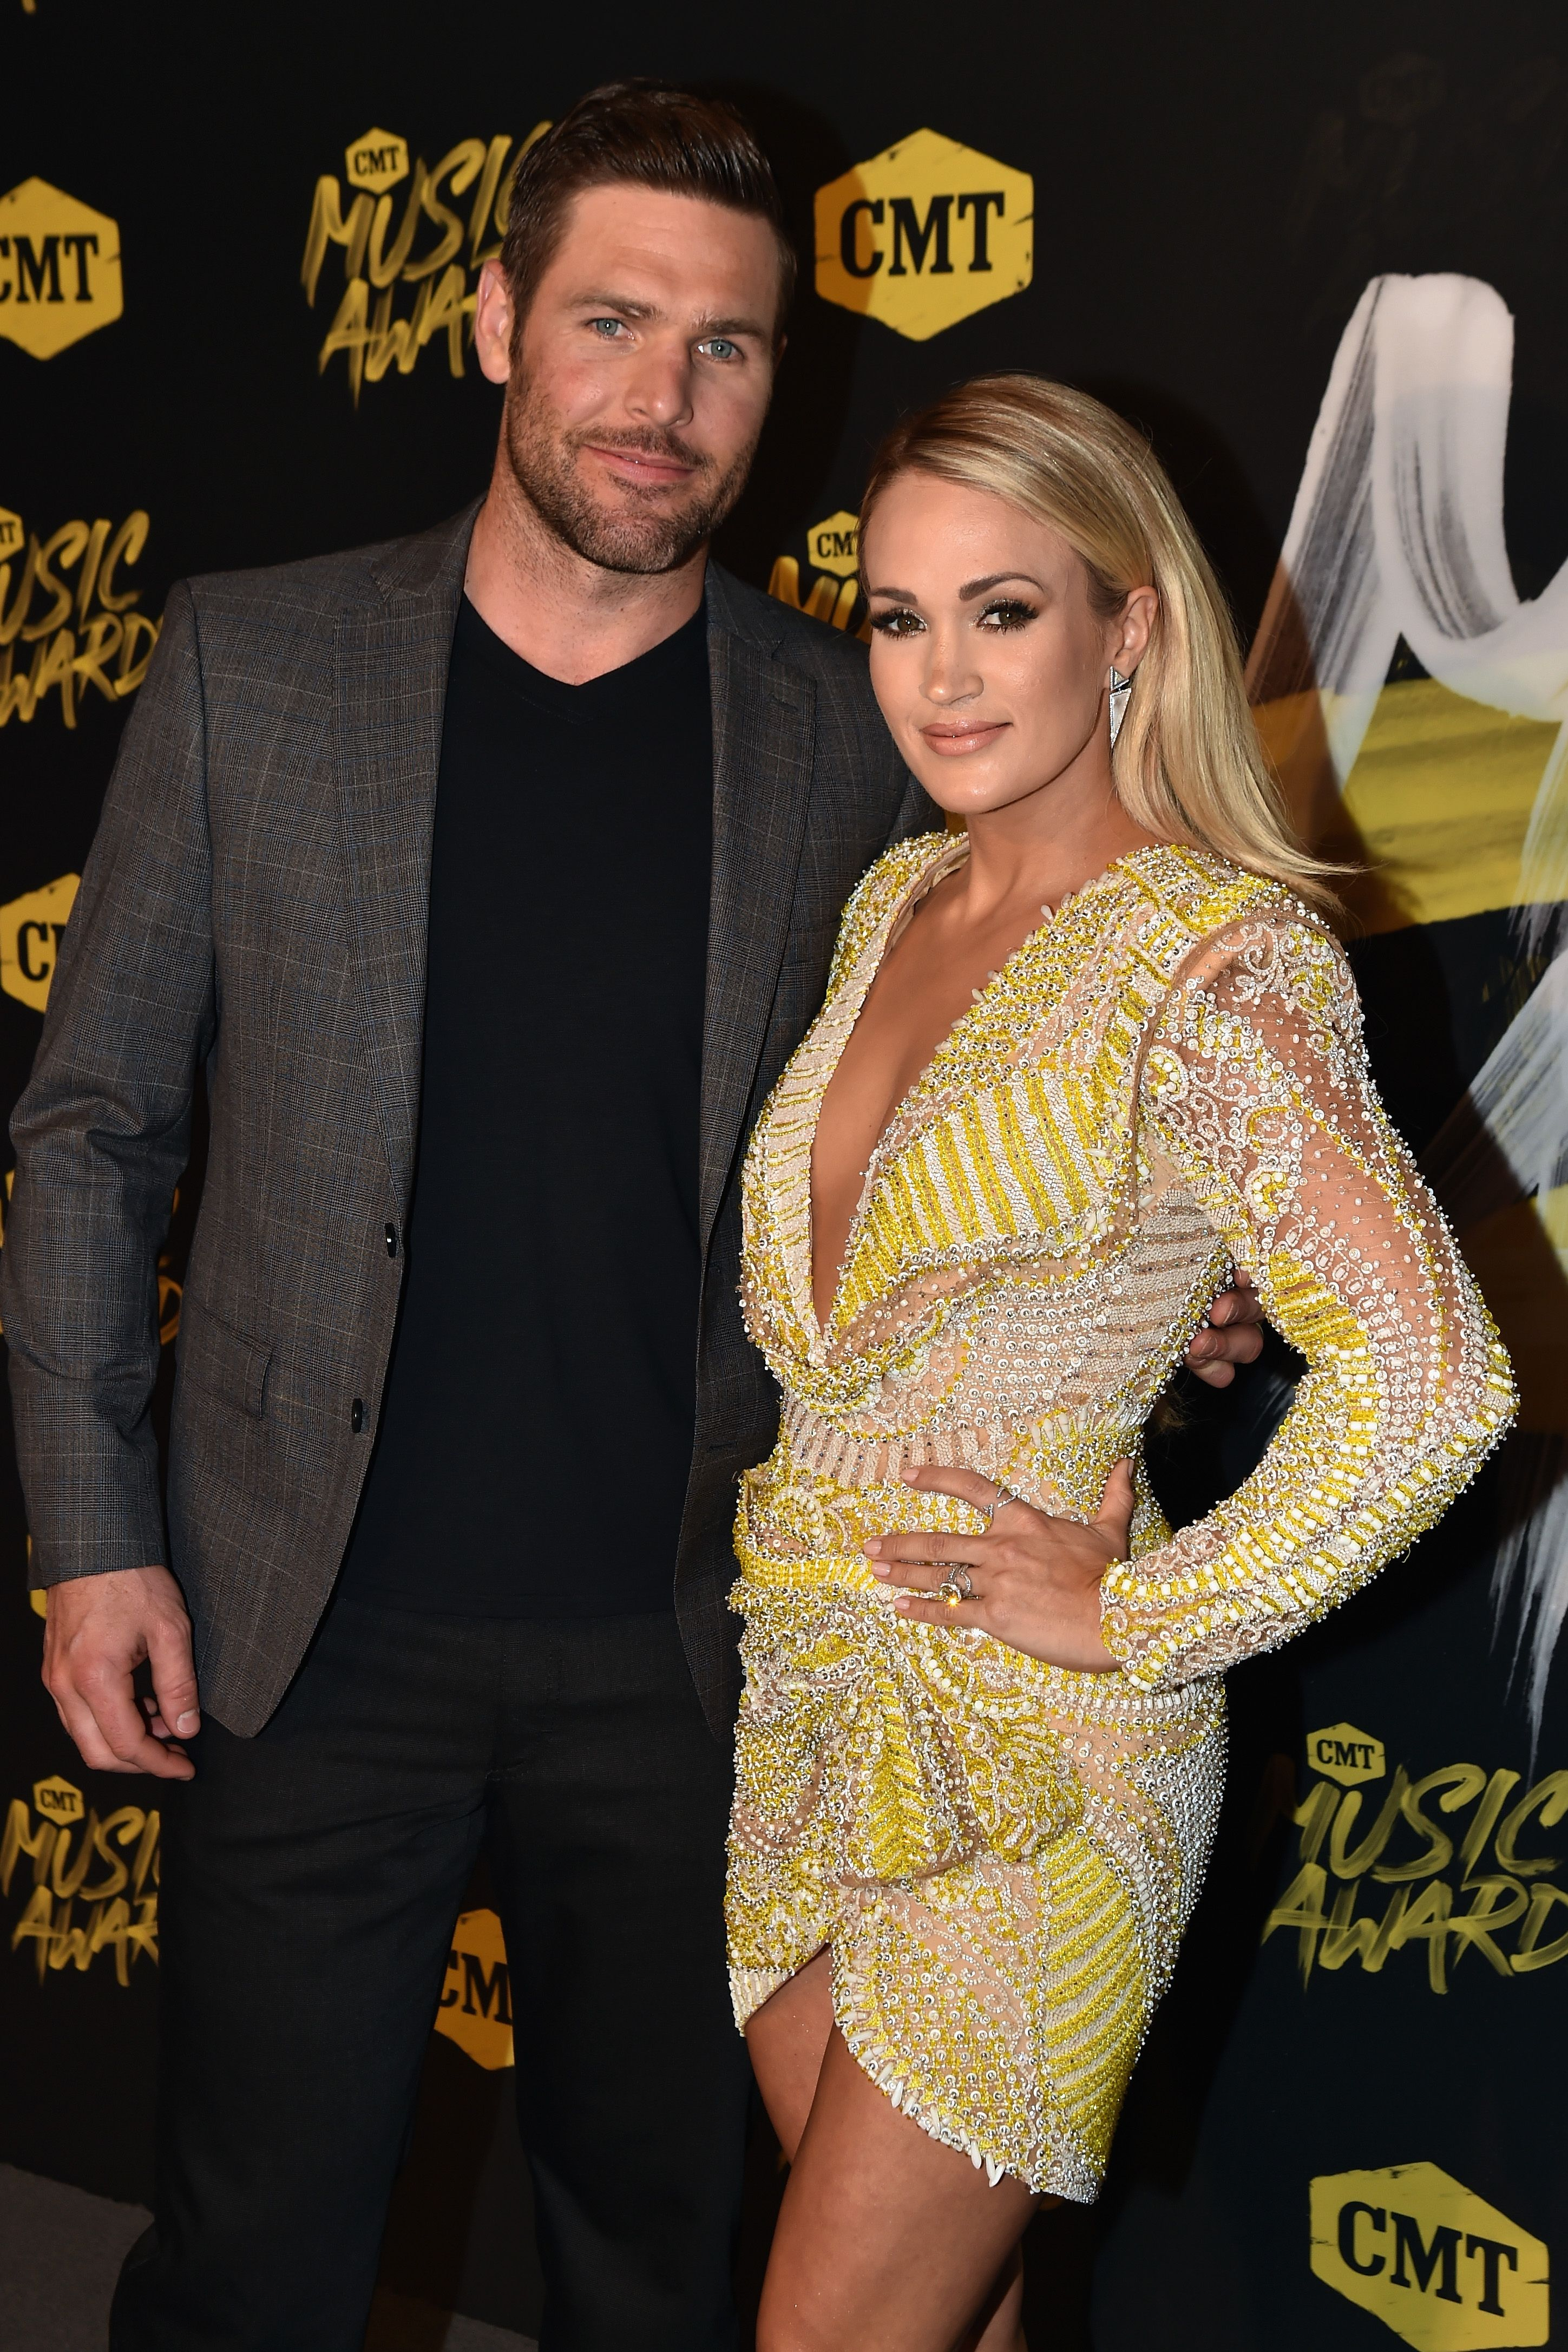 Carrie Underwood and Mike Fisher were set up on a blind date.